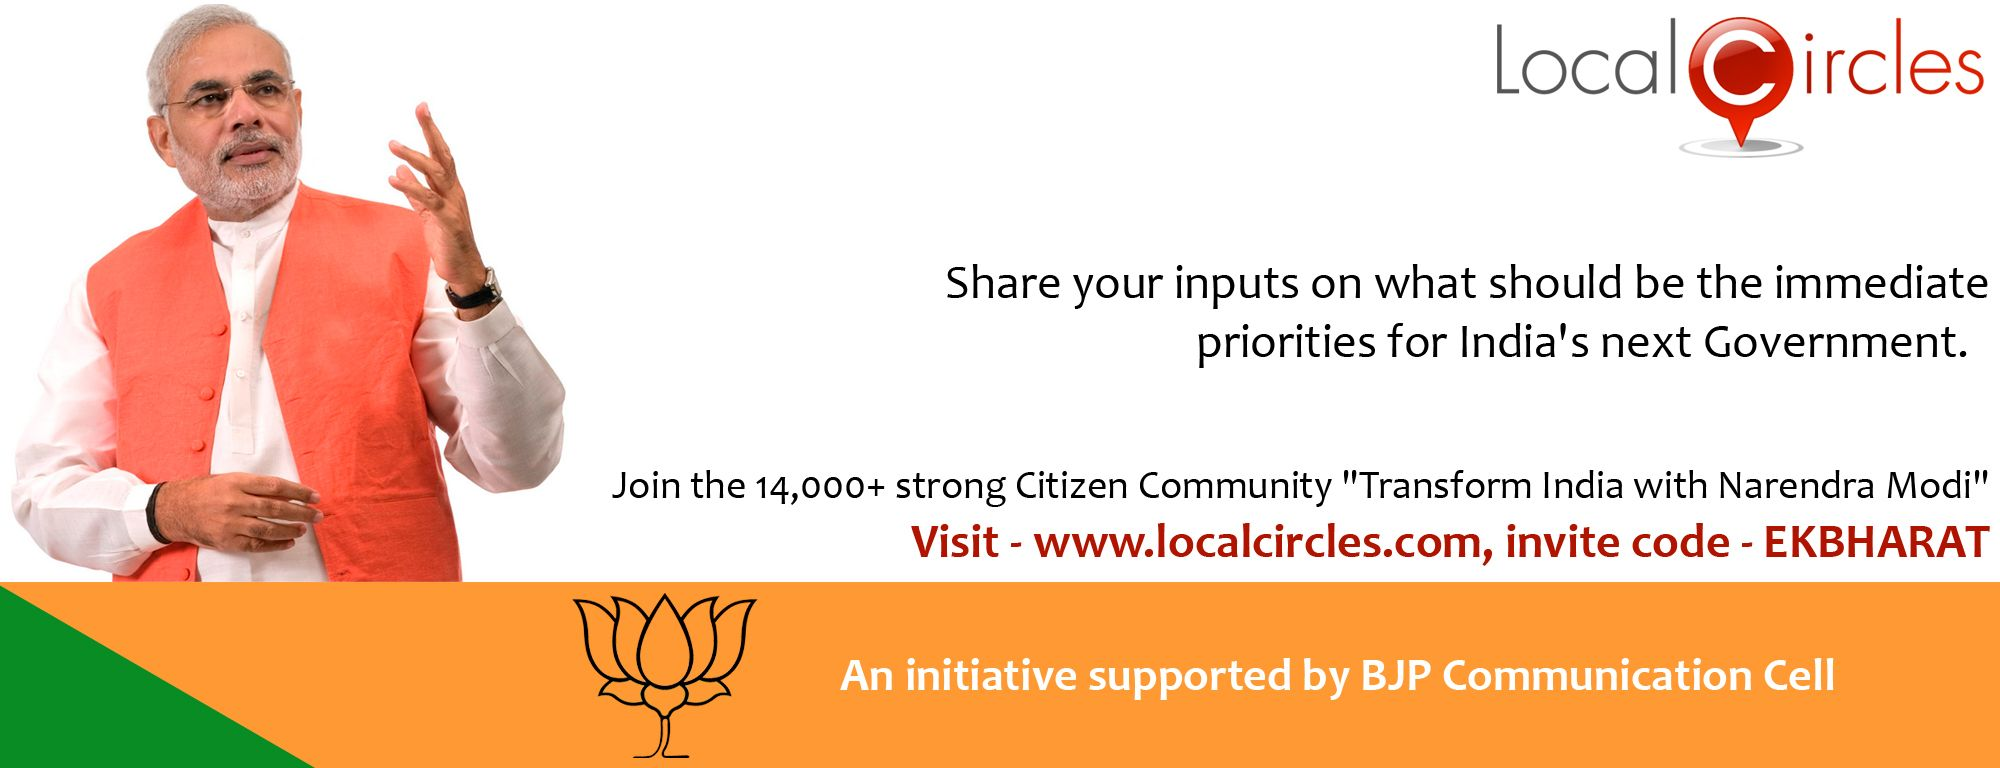 Citizen_Invite_-_Transform_India_with_Narendra_Modi___20140516111128___.jpg